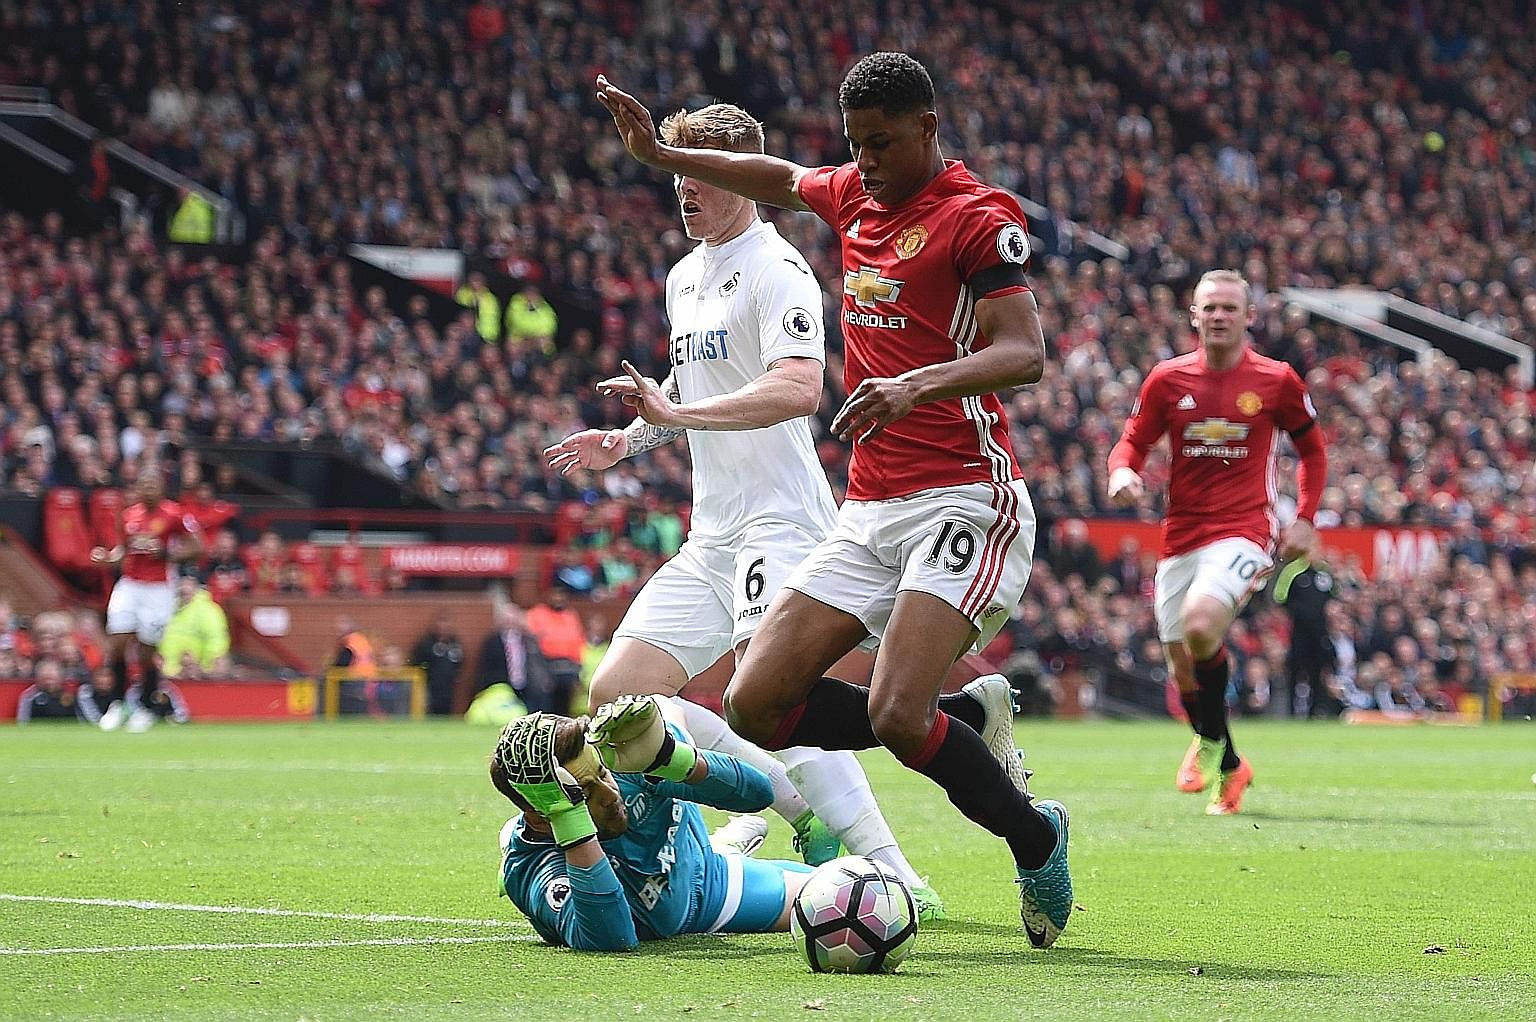 Manchester United's English striker Marcus Rashford goes down as Swansea goalkeeper Lukasz Fabianski pulls his arms away. His dive earned his side a penalty in the English Premier League clash.